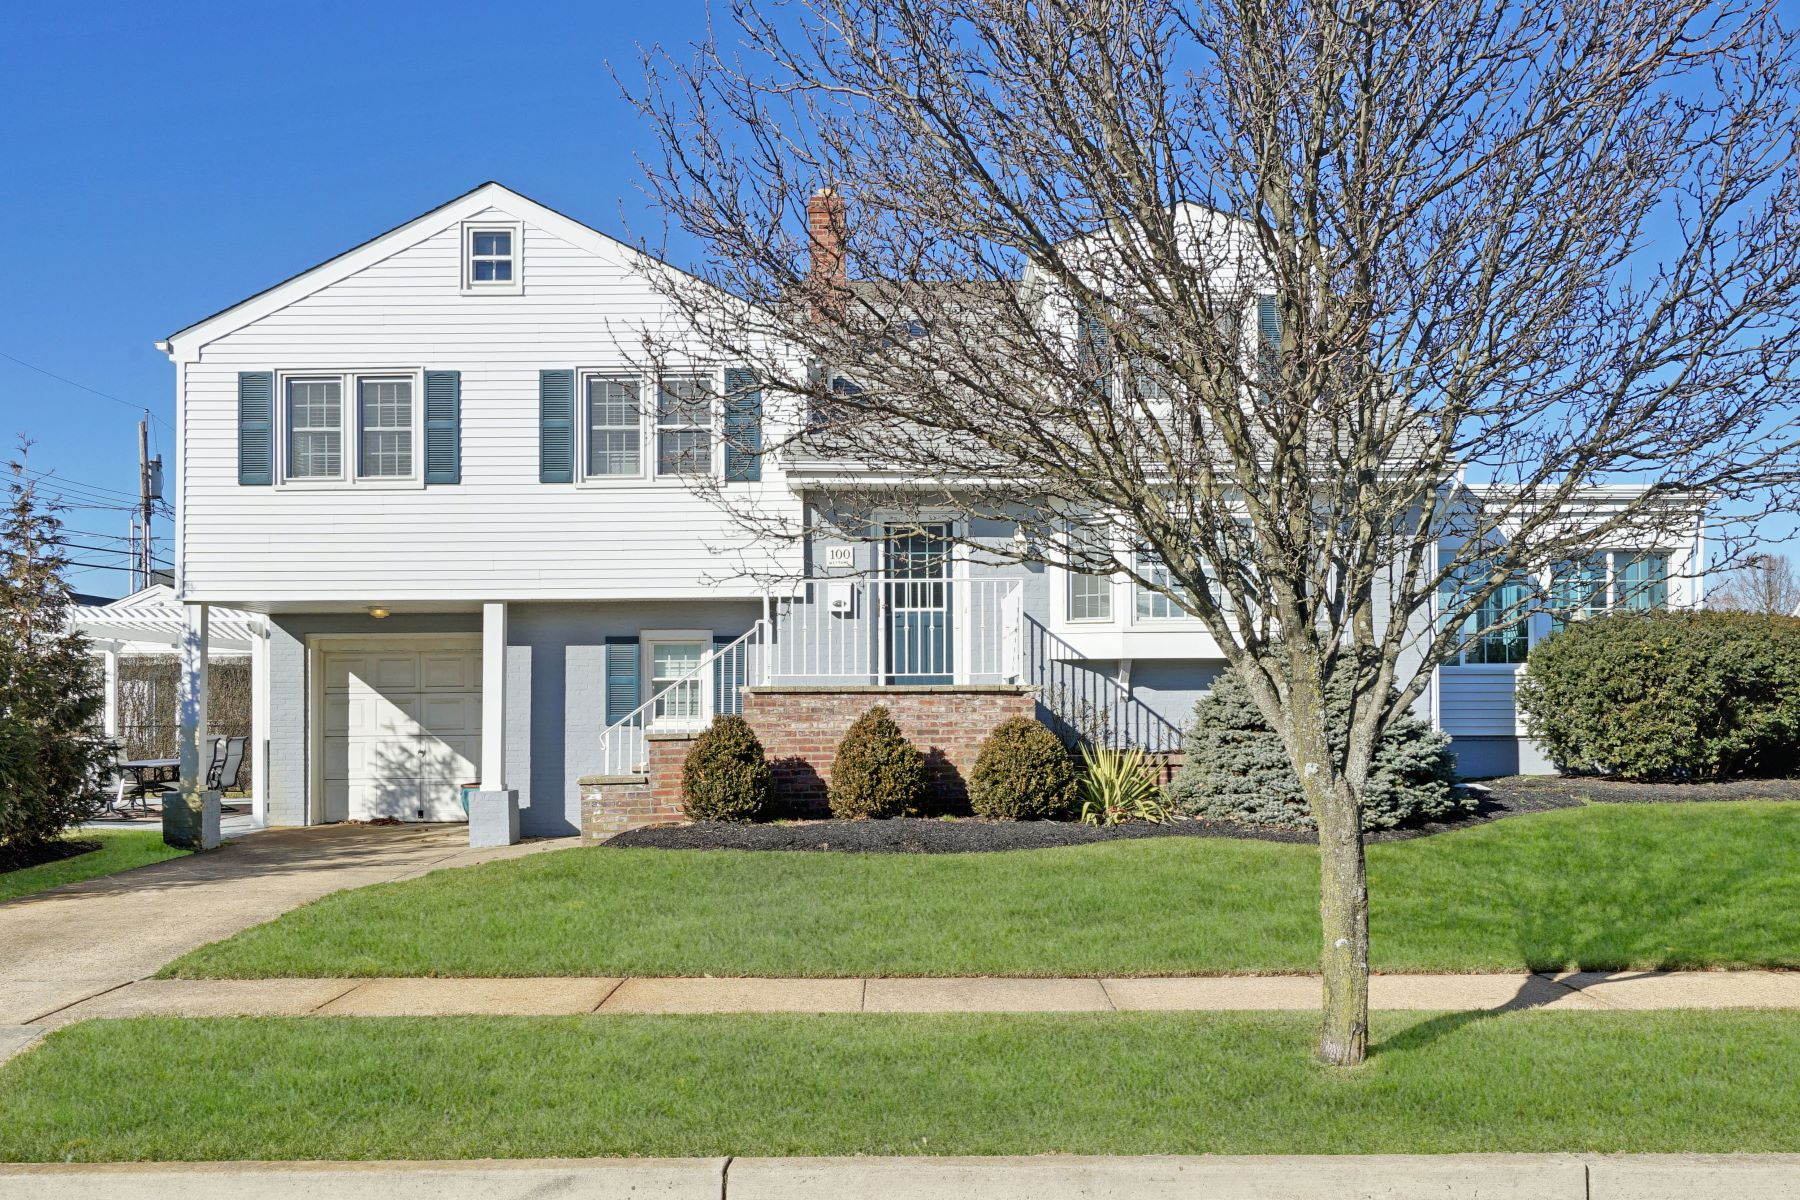 Single Family Homes for Sale at Charming Shore Split-Level 100 Neptune Place Sea Girt, New Jersey 08750 United States